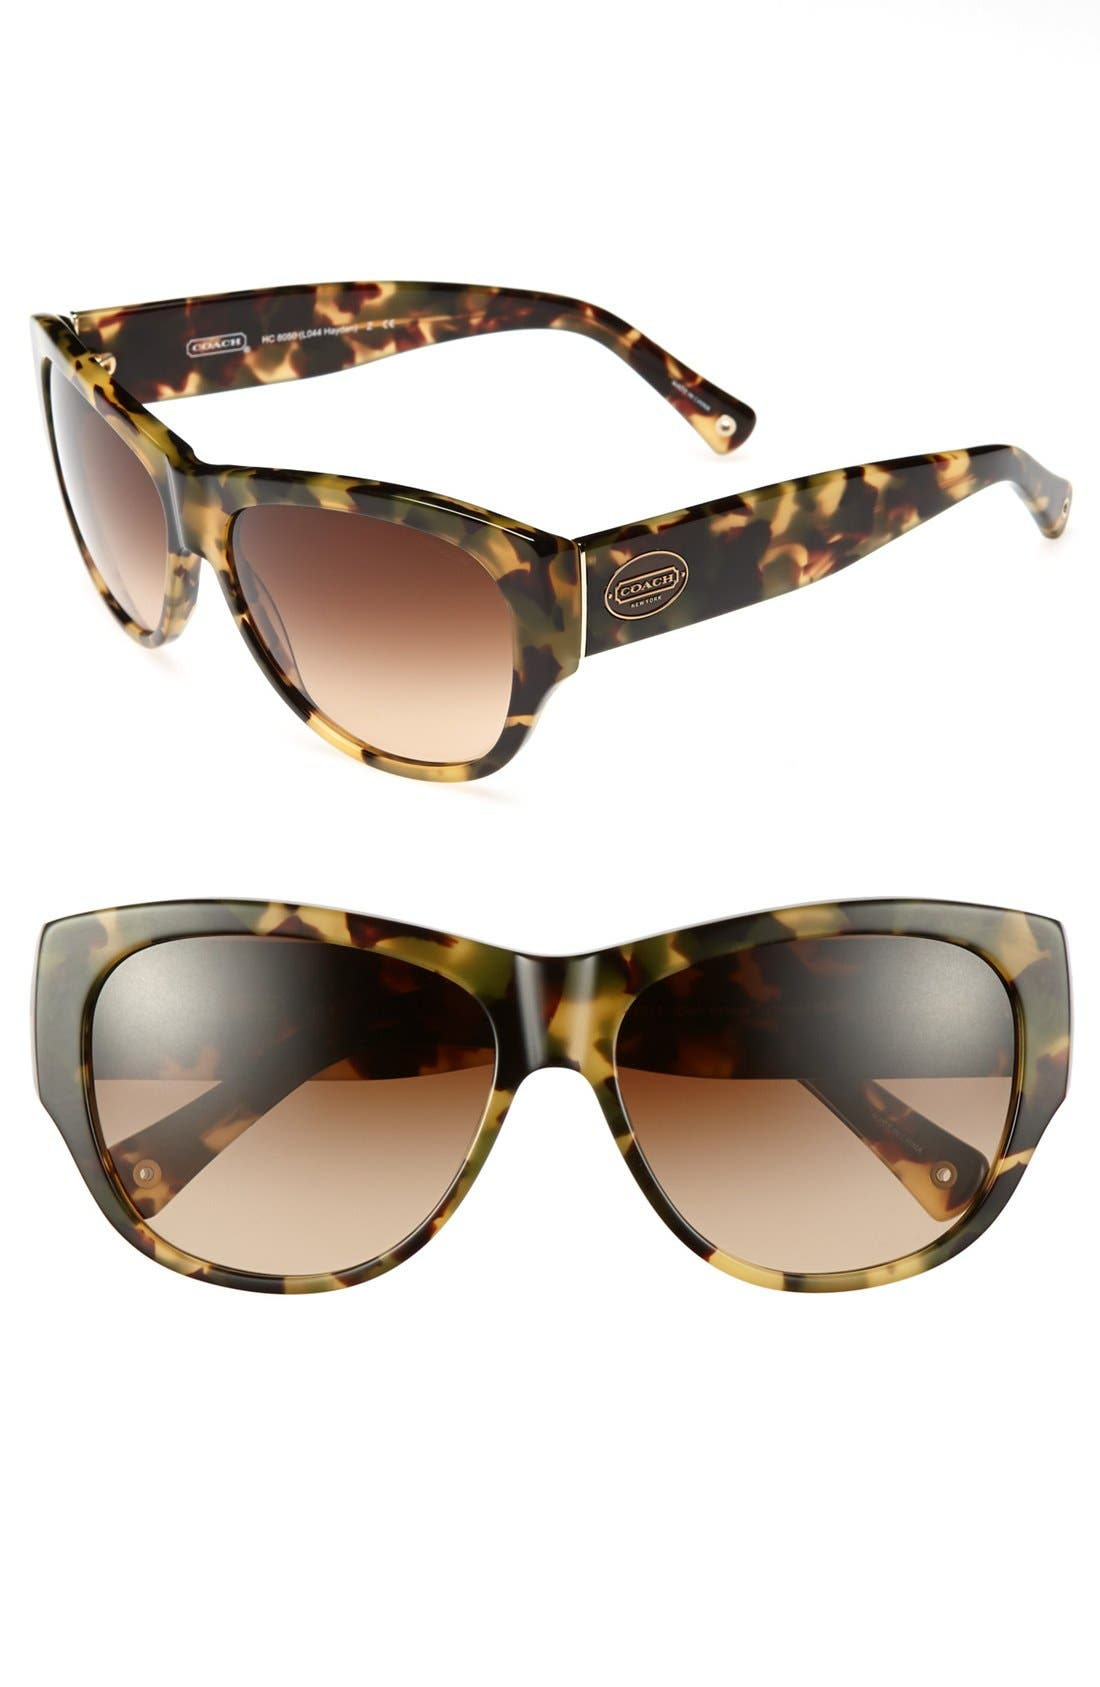 Alternate Image 1 Selected - COACH 'Hayden' 58mm Sunglasses